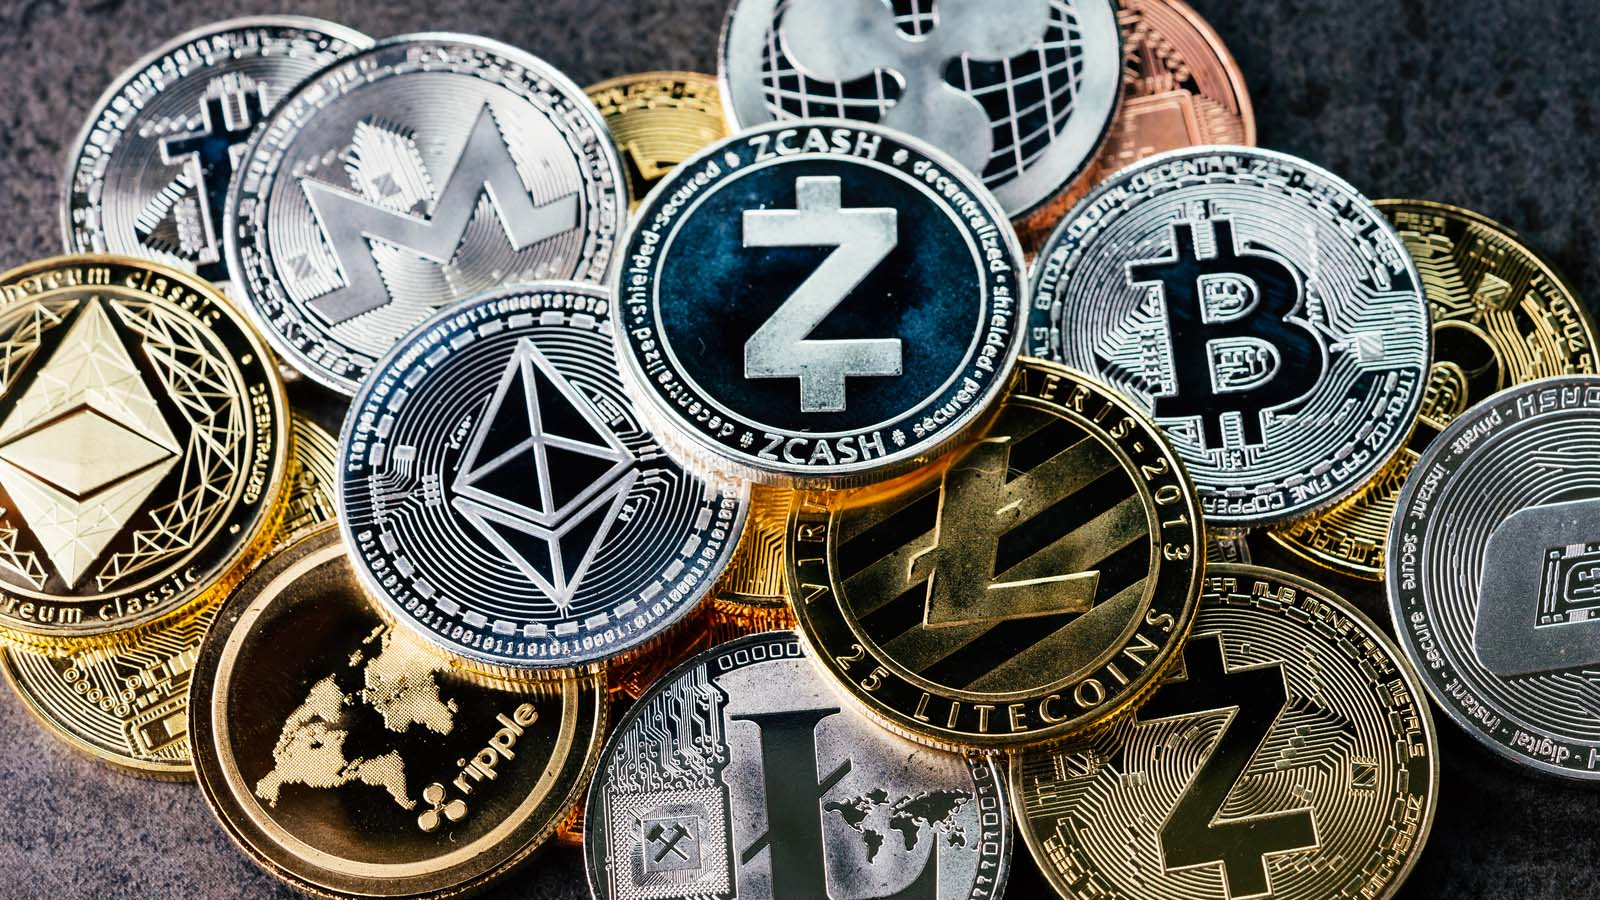 altcoins - 7 Non-Bitcoin Cryptocurrencies to Buy Now